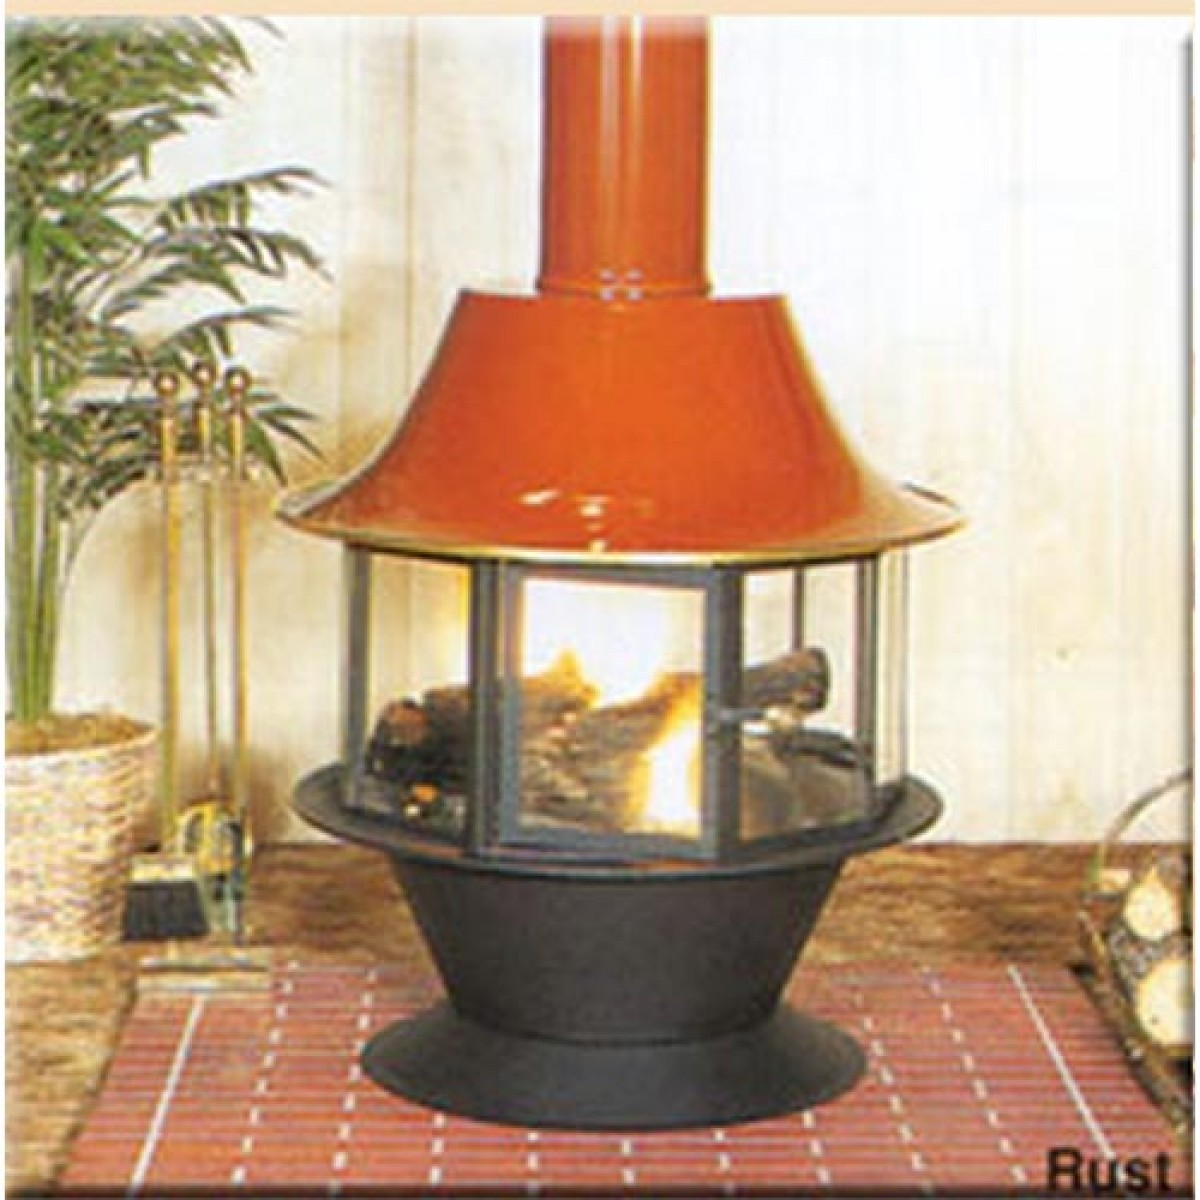 than with red fireplaces the fireplace ever playing malm is hotter fire porch